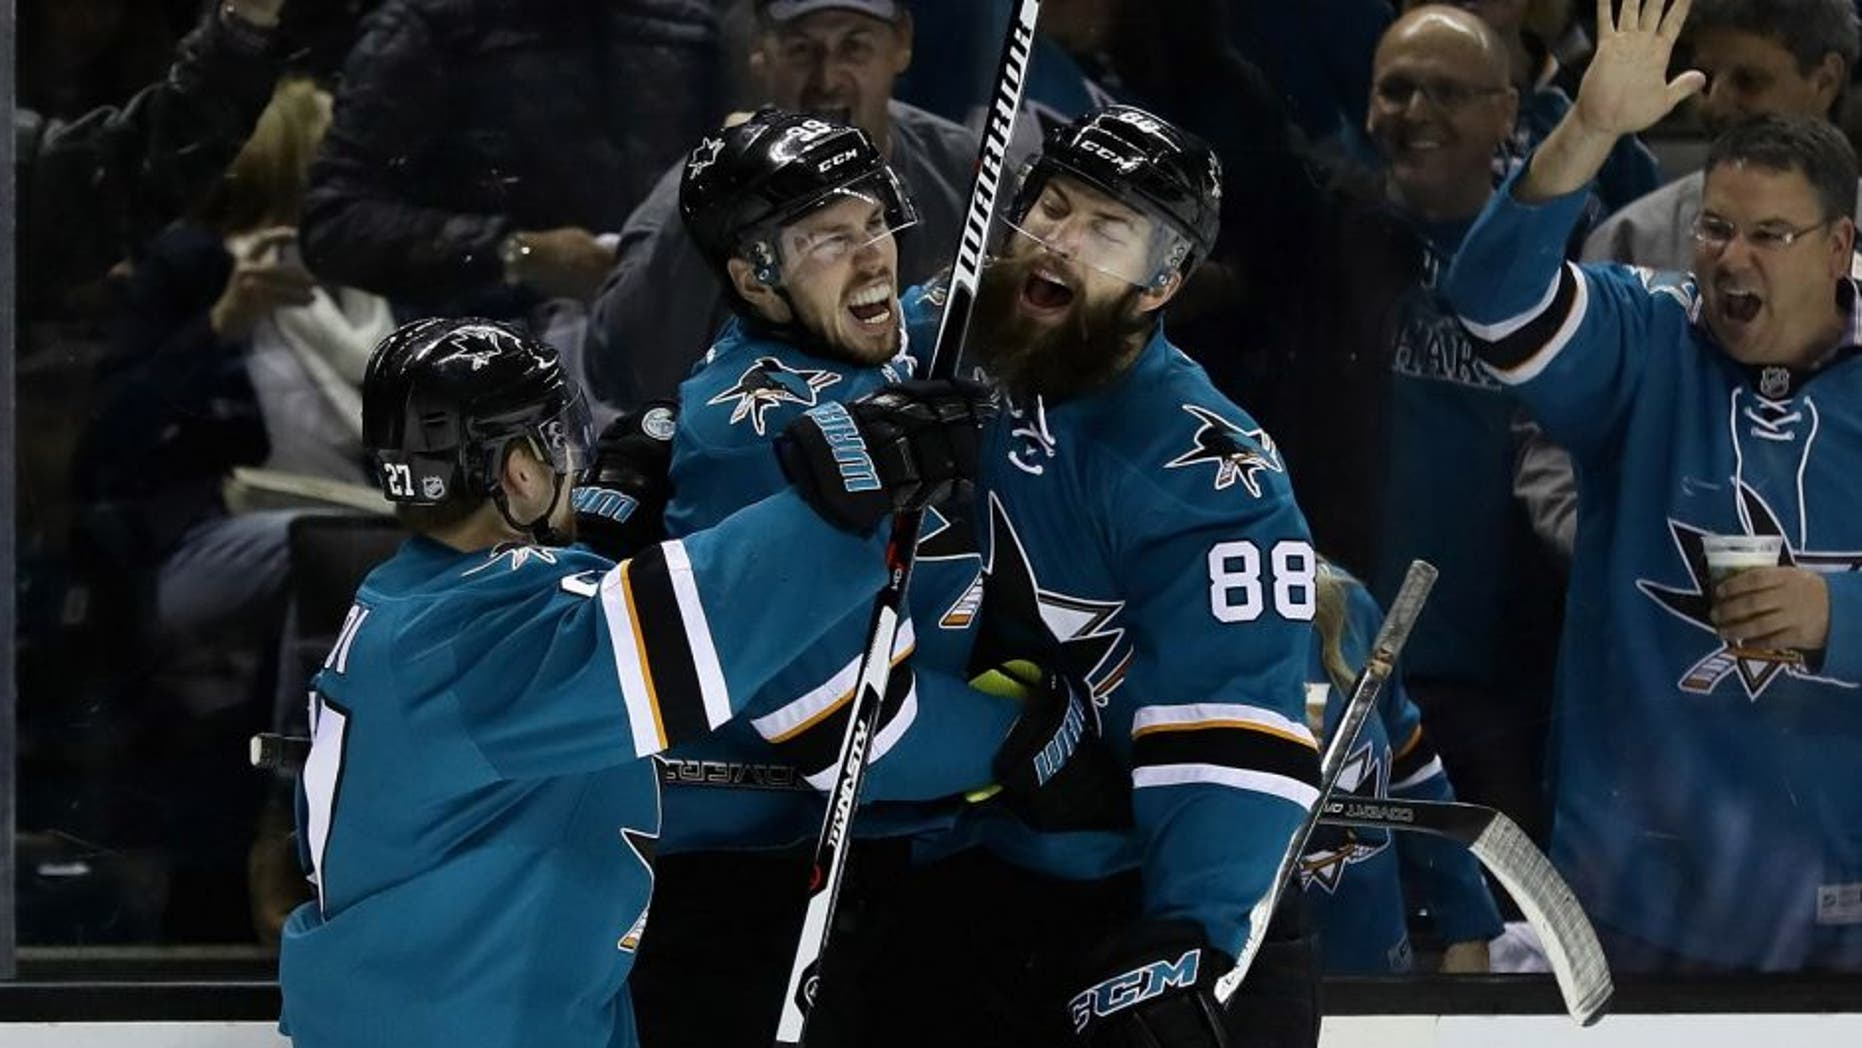 SAN JOSE, CA - MAY 12: Logan Couture #39 of the San Jose Sharks is congratulated by Brent Burns #88 and Joonas Donskoi #27 after Couture scored in the second period against the Nashville Predators in Game Seven of the Western Conference Second Round during the 2016 NHL Stanley Cup Playoffs at SAP Center on May 12, 2016 in San Jose, California. (Photo by Ezra Shaw/Getty Images)